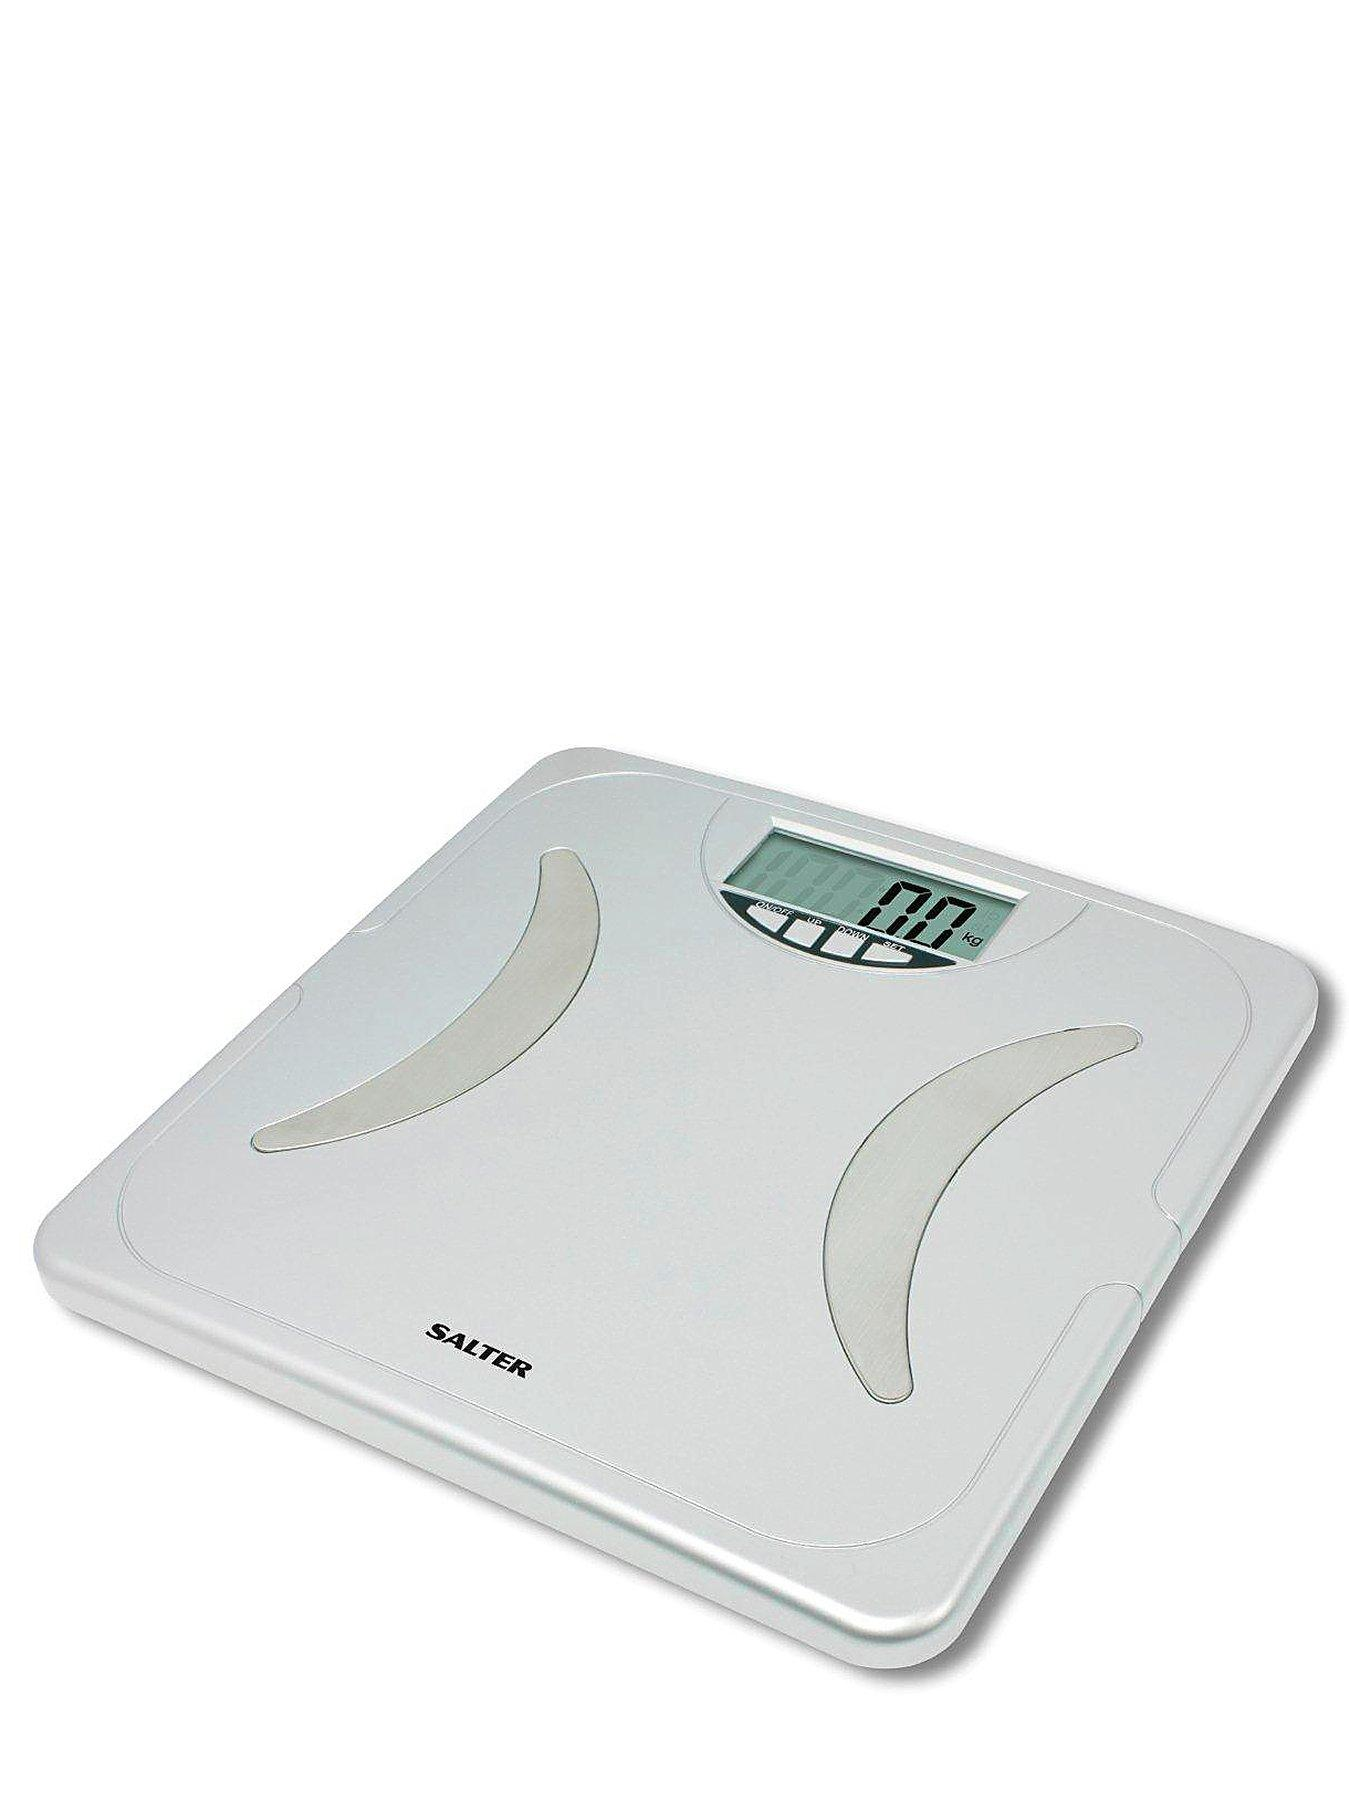 Salter Compact Analyser Scales